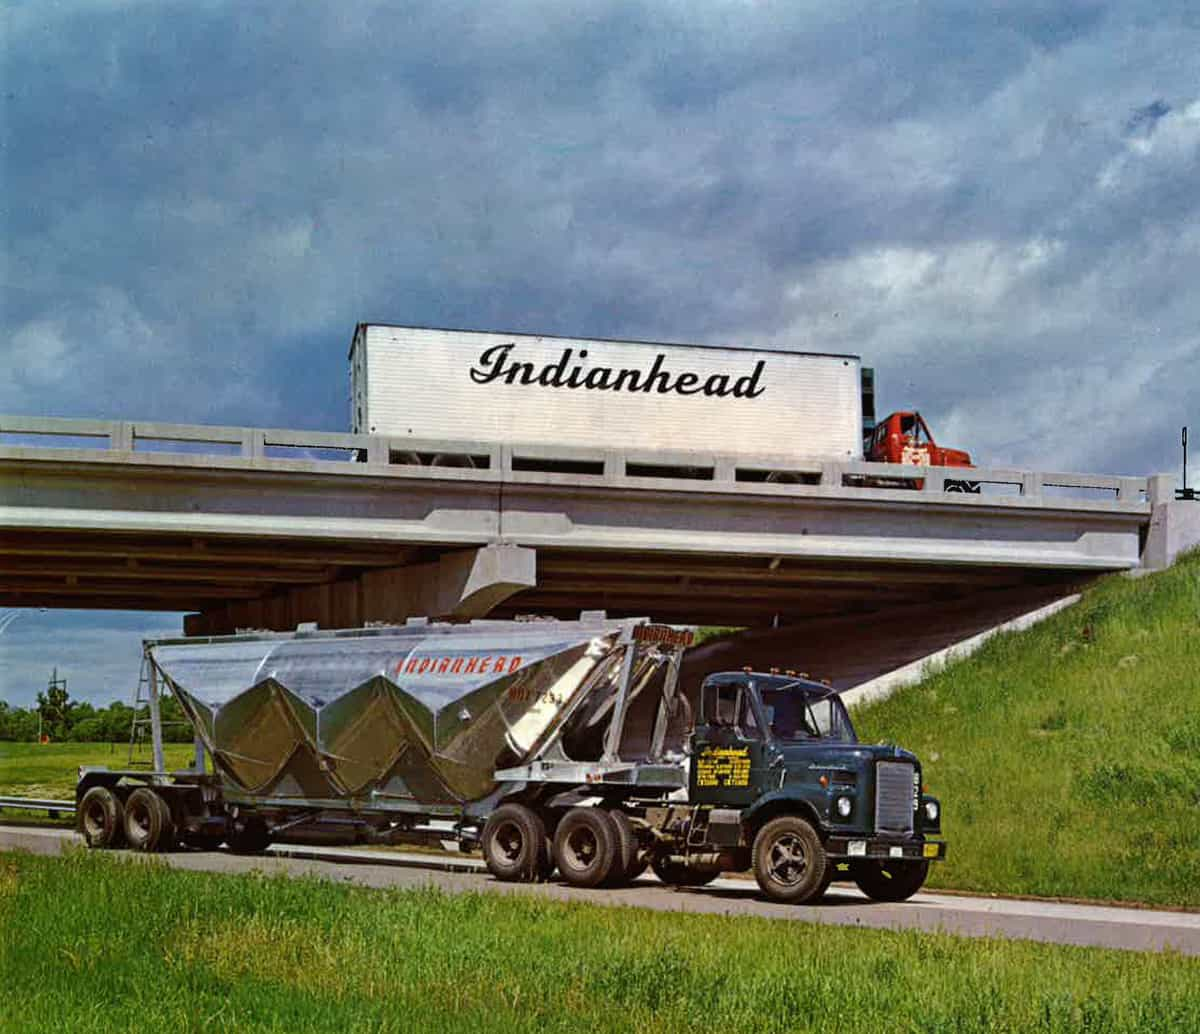 An Indianhead tractor-trailer passes above an Indianhead tanker.